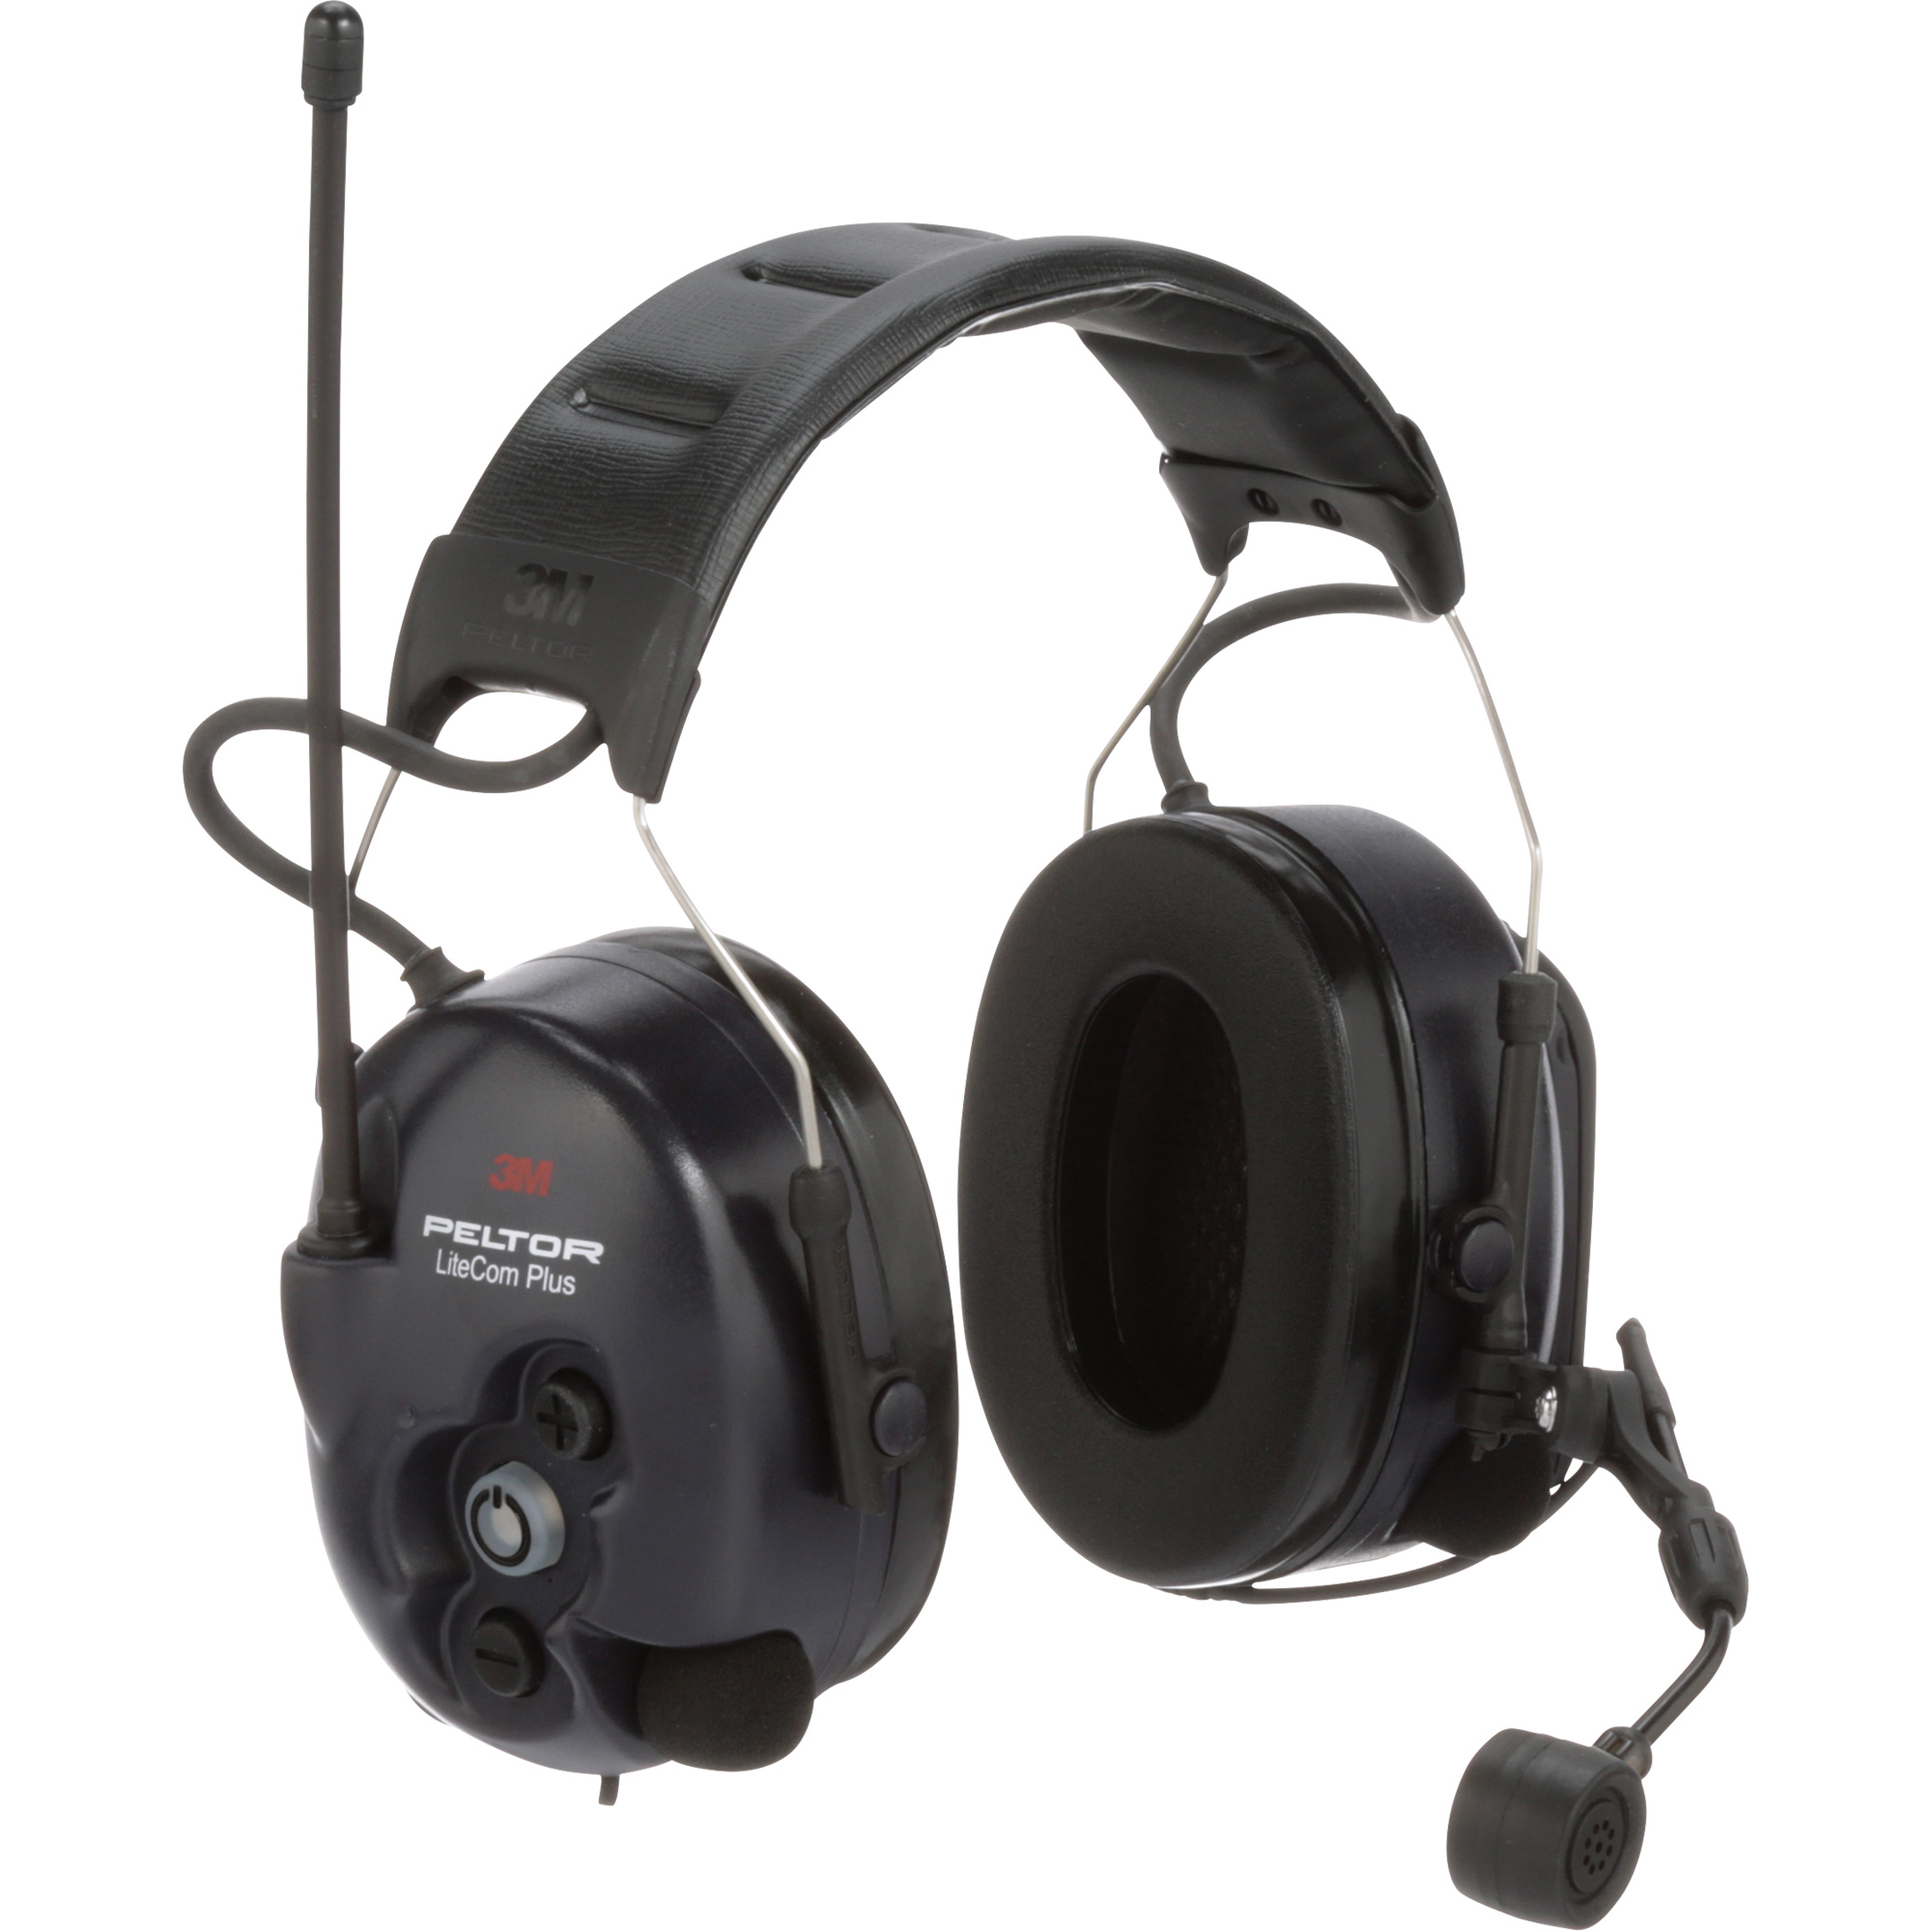 3M™ Peltor™ Litecom Plus headset